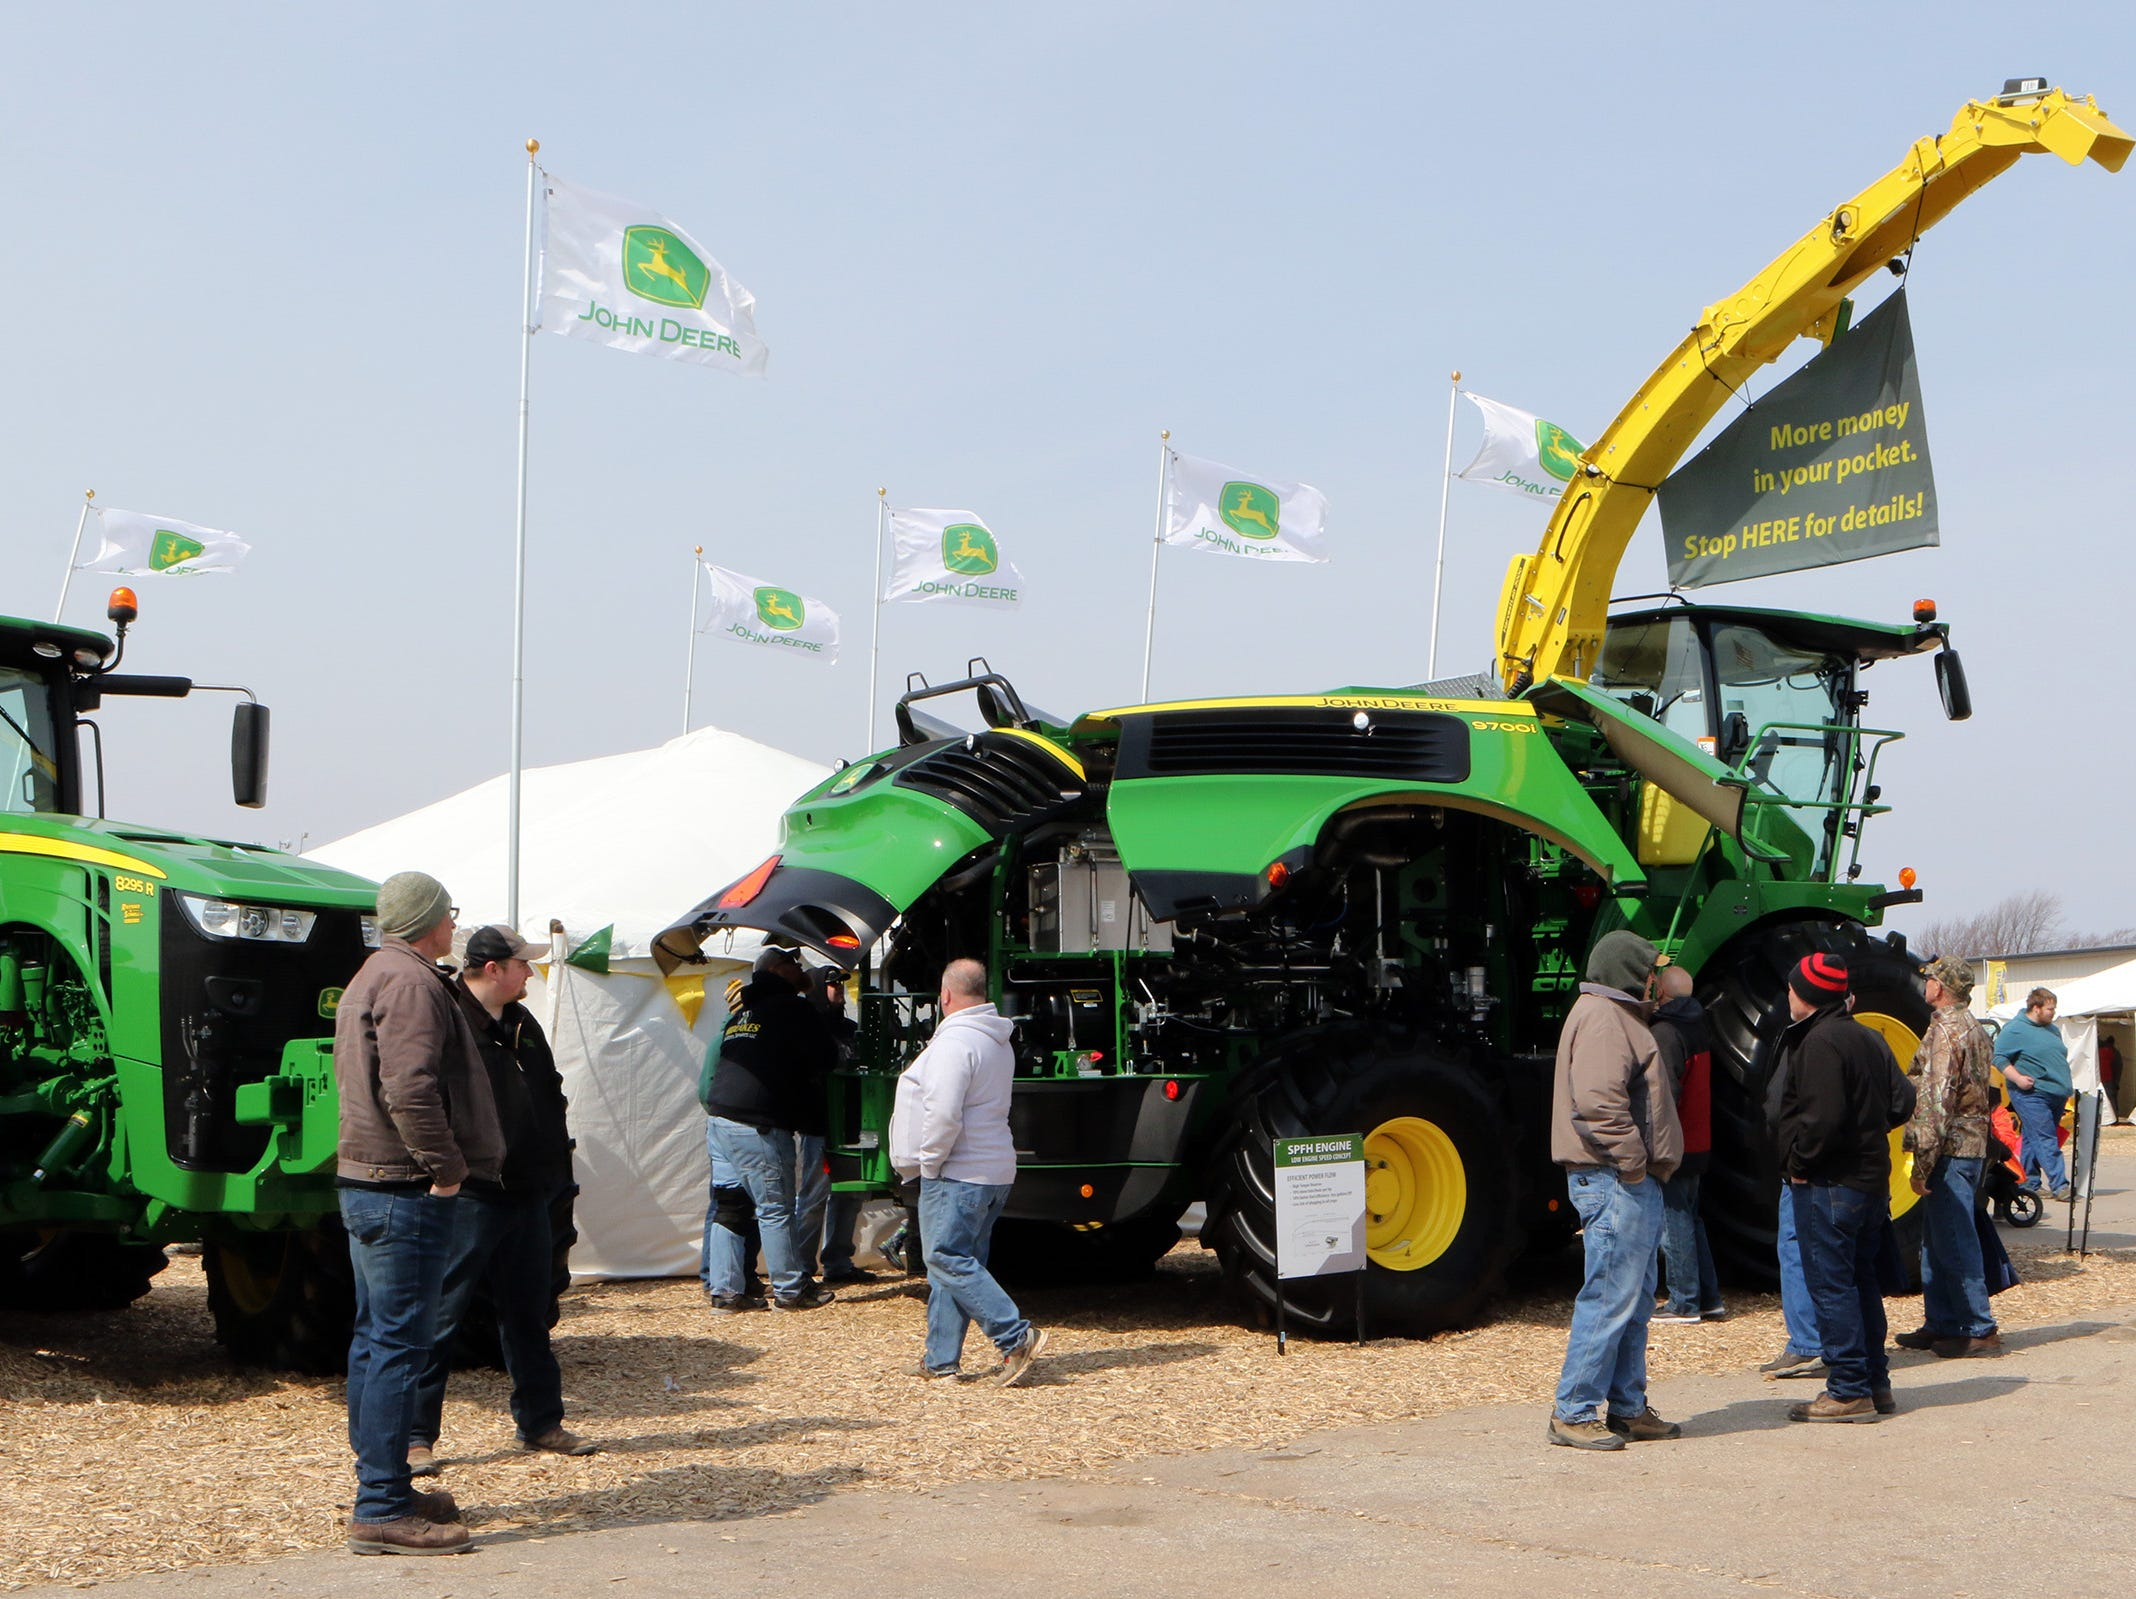 The John Deere 9700i forage harvester garnered lots of attention during the Wisconsin Public Service Farm Show on March 27 in Oshkosh.